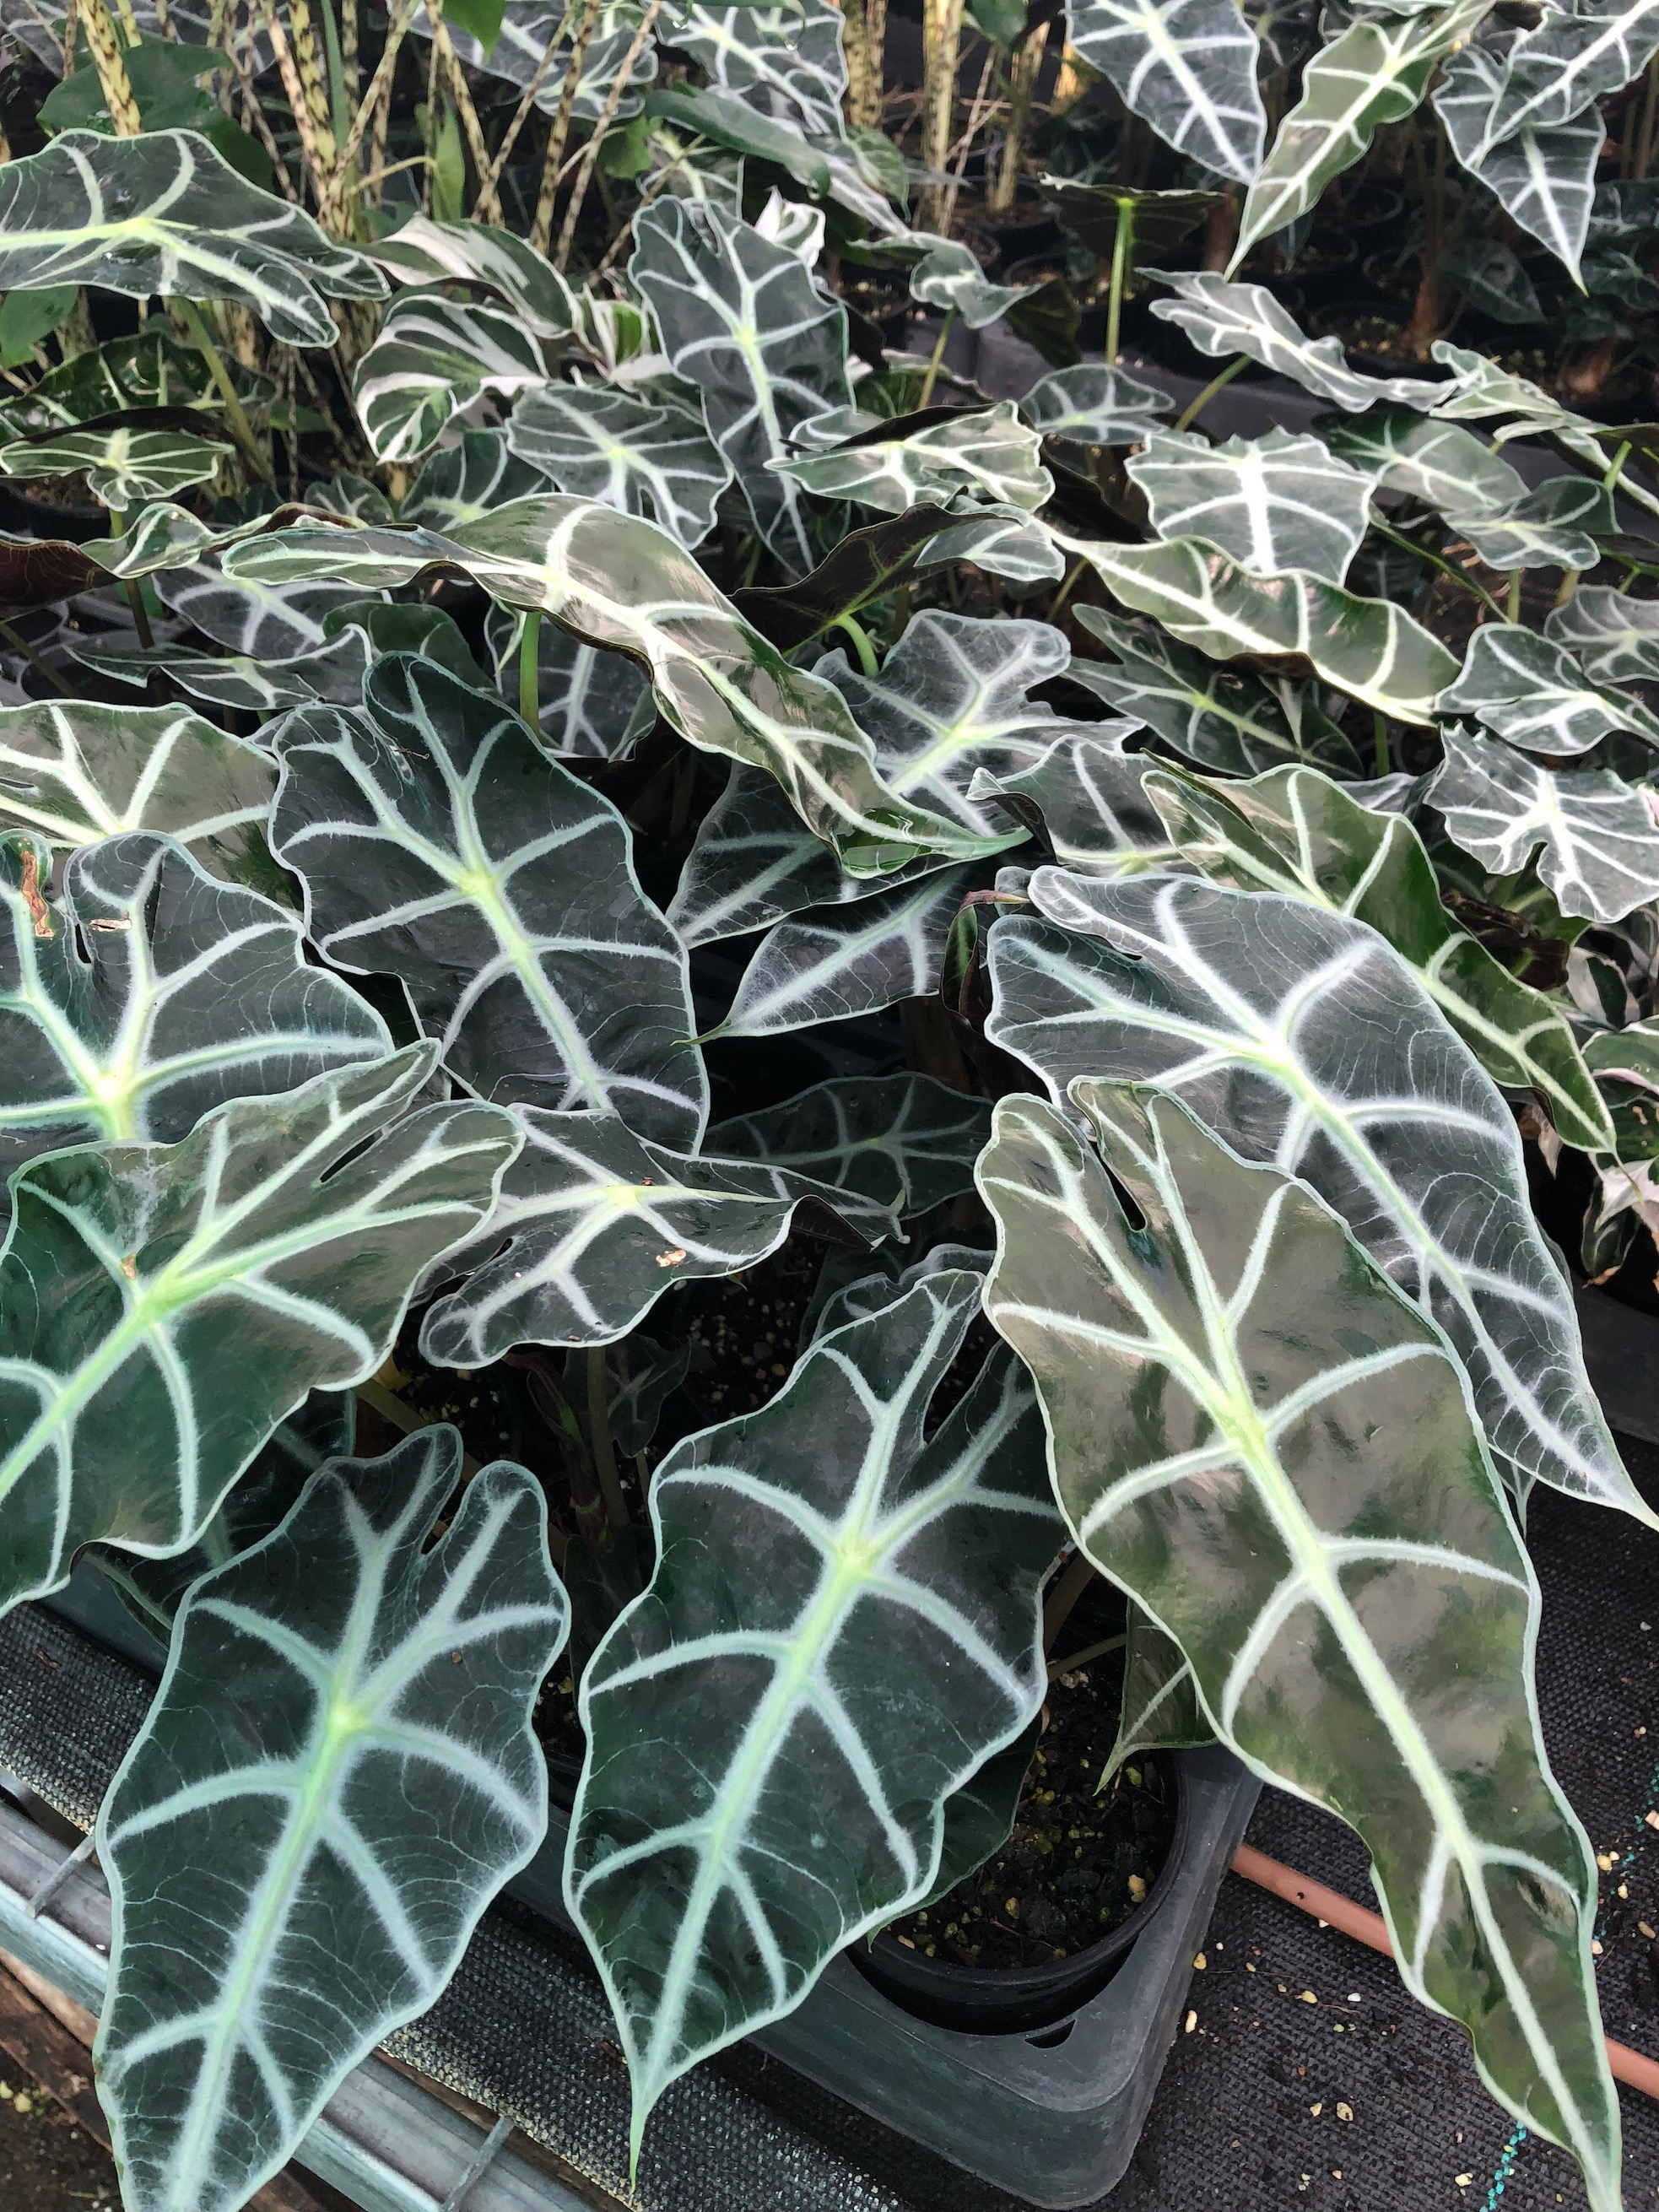 Or a quiet elegance of Alocasia amazonica dwarf